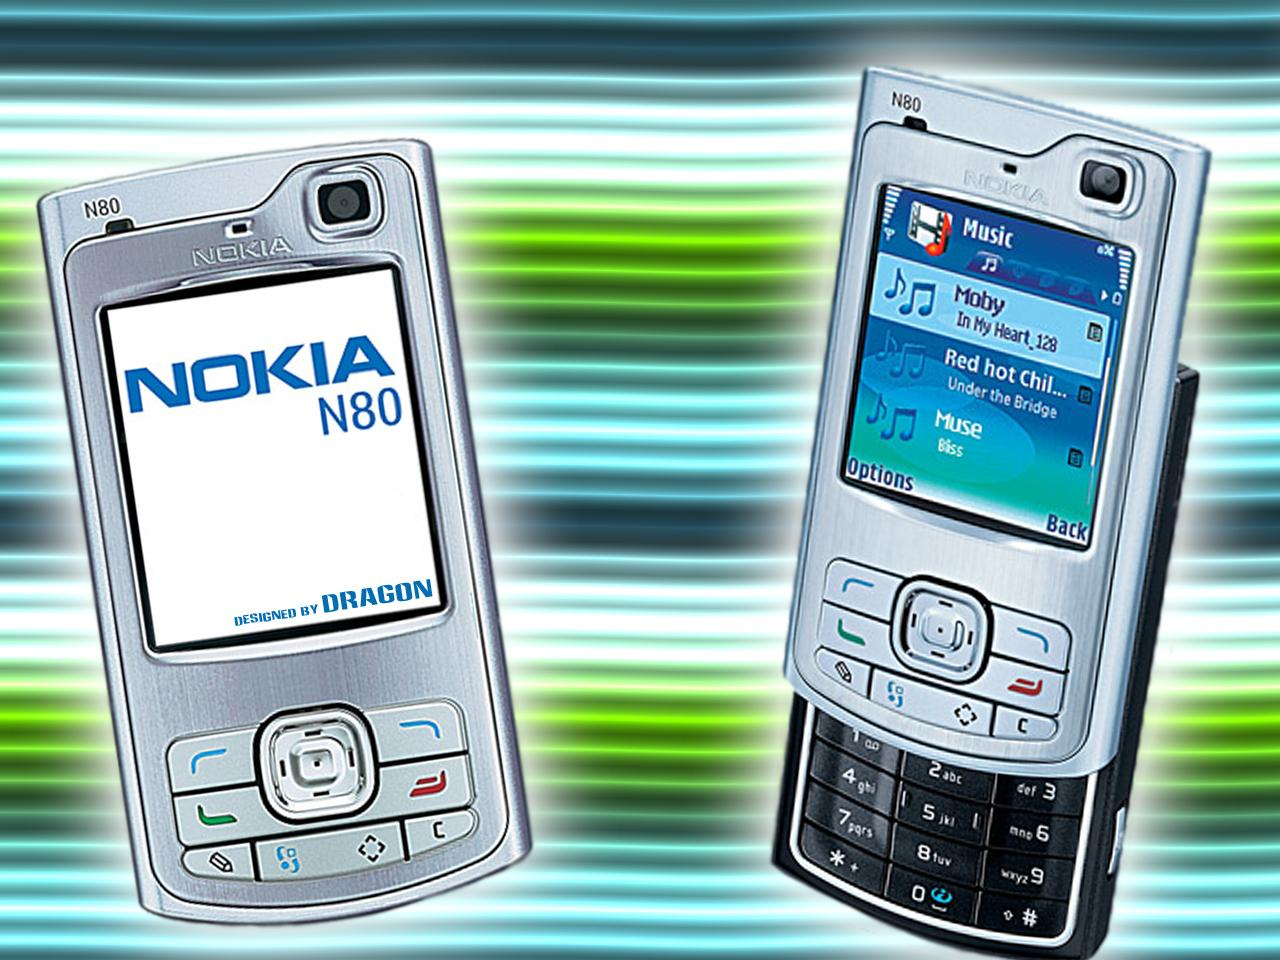 You are viewing the Nokia wallpaper named